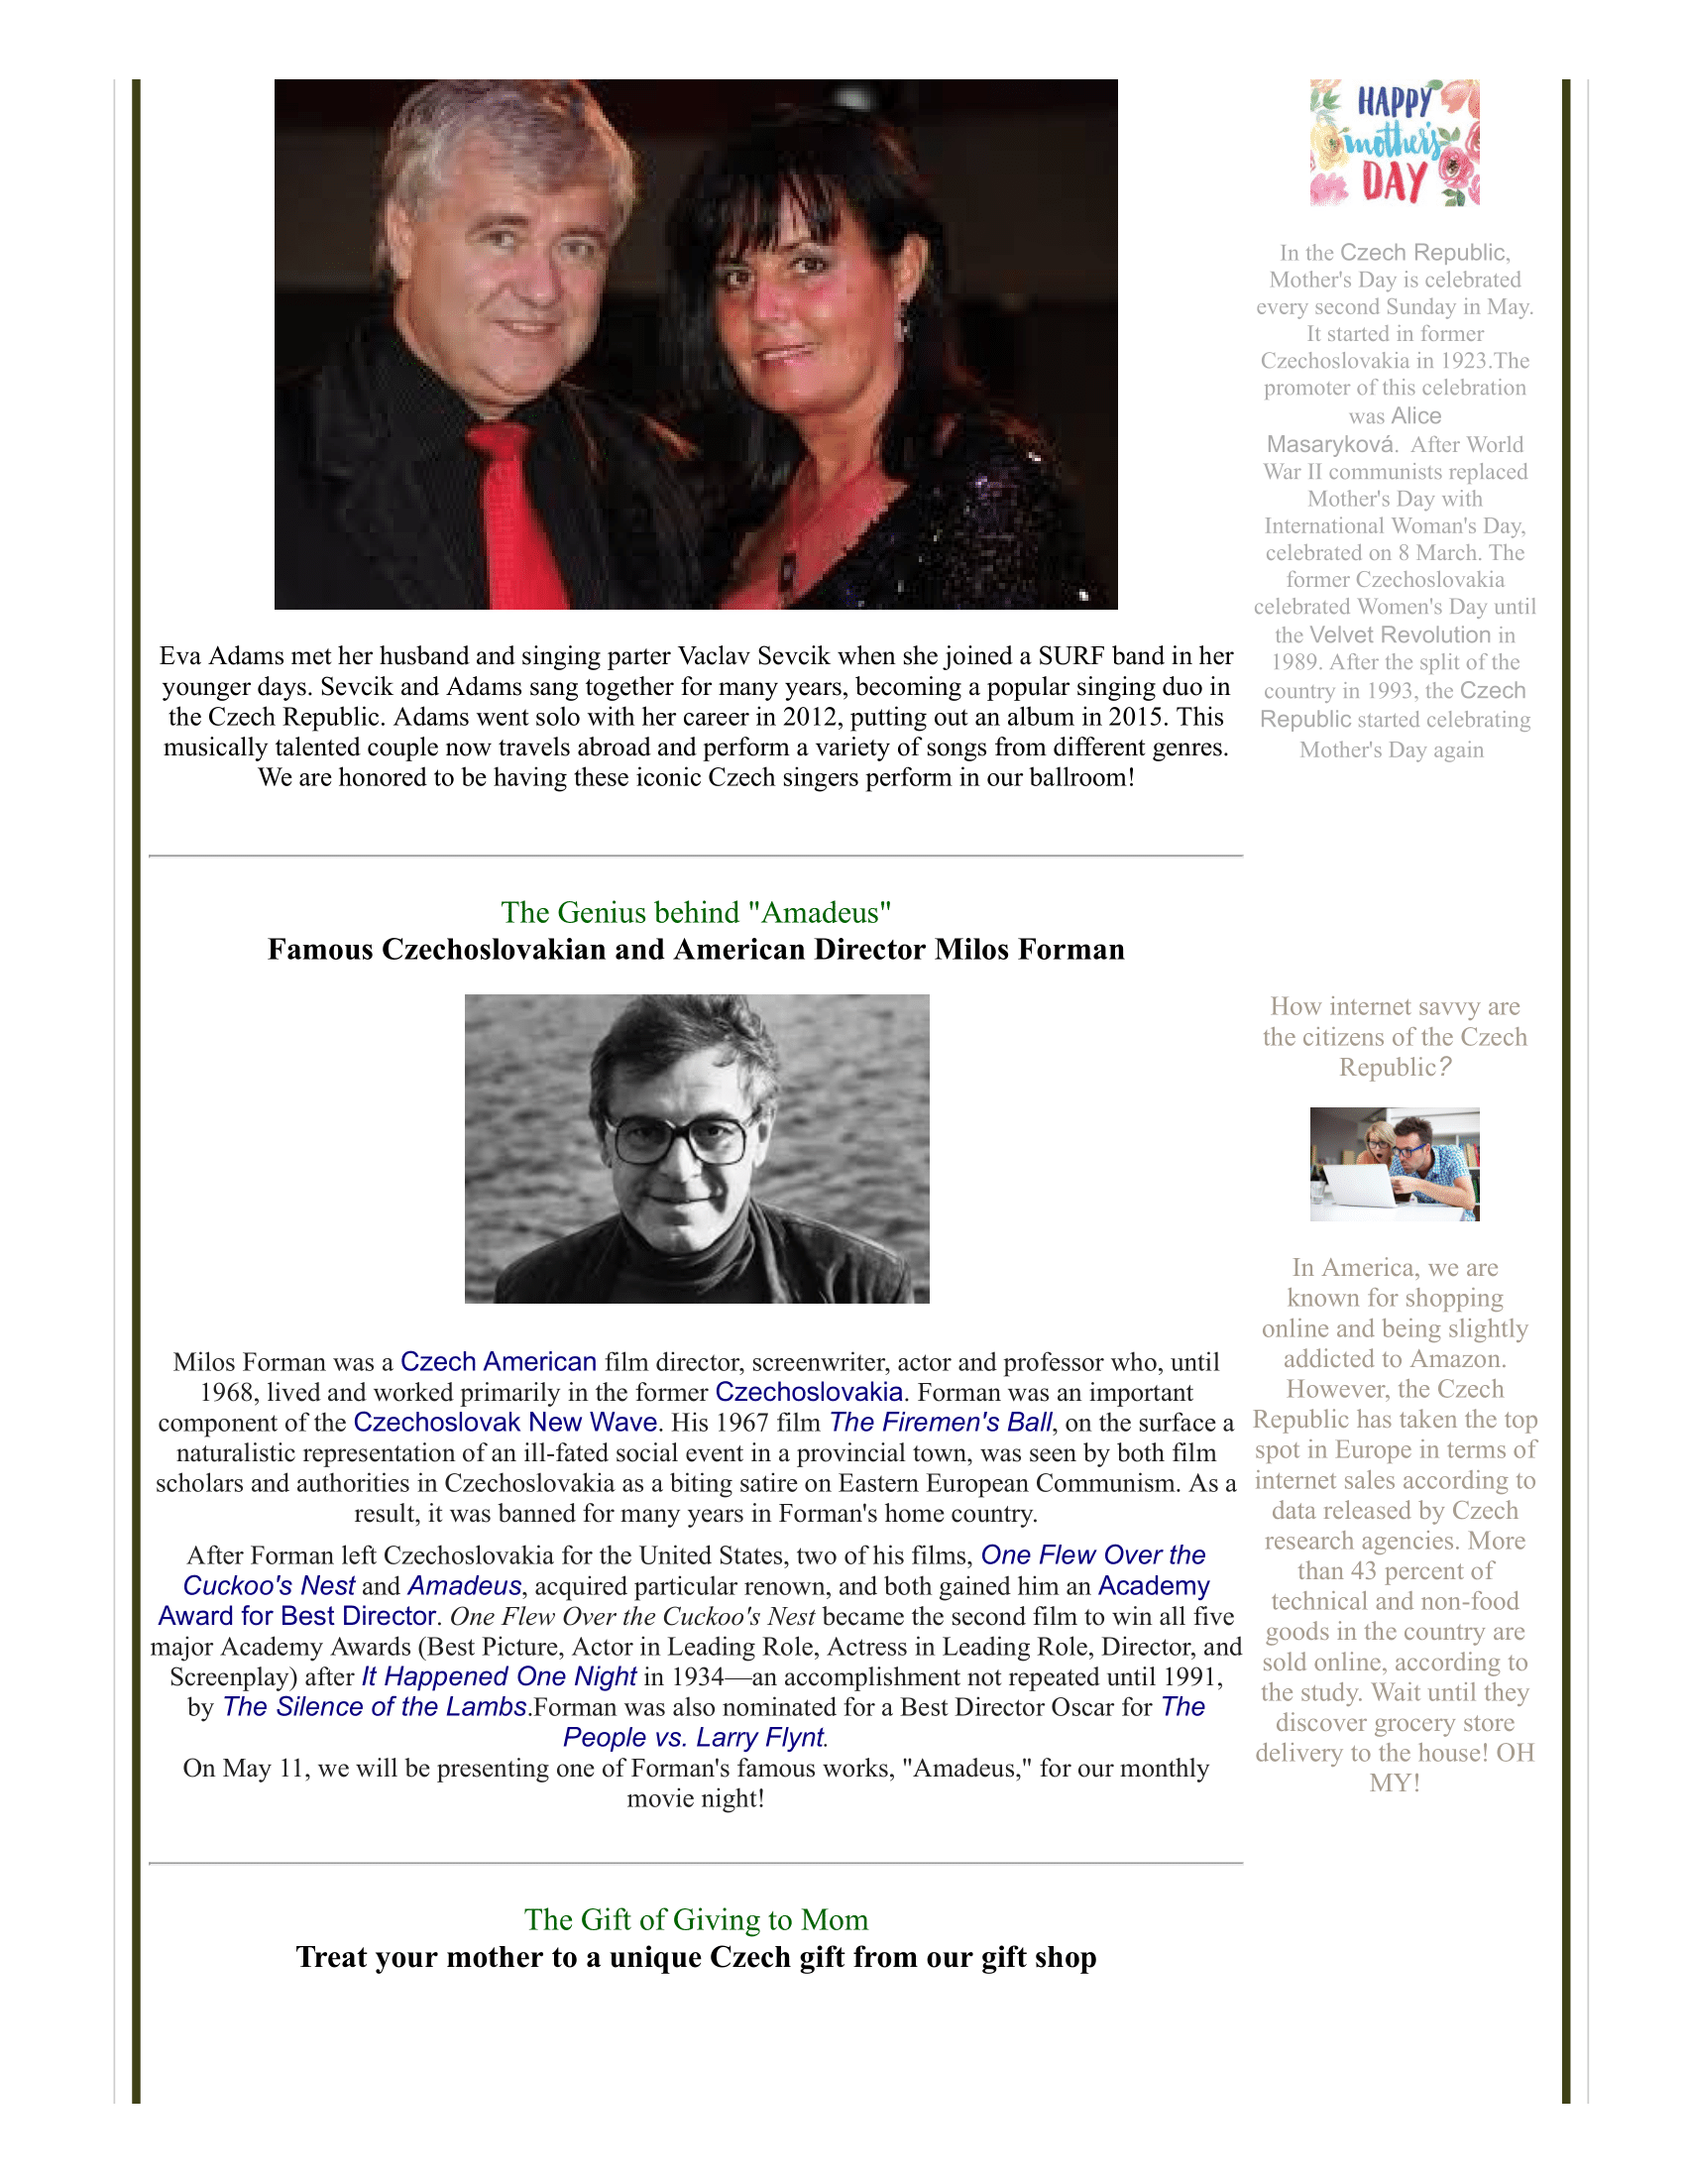 Czech Center Museum Houston Mail - April 2018 CCMH Newsletter-3.png